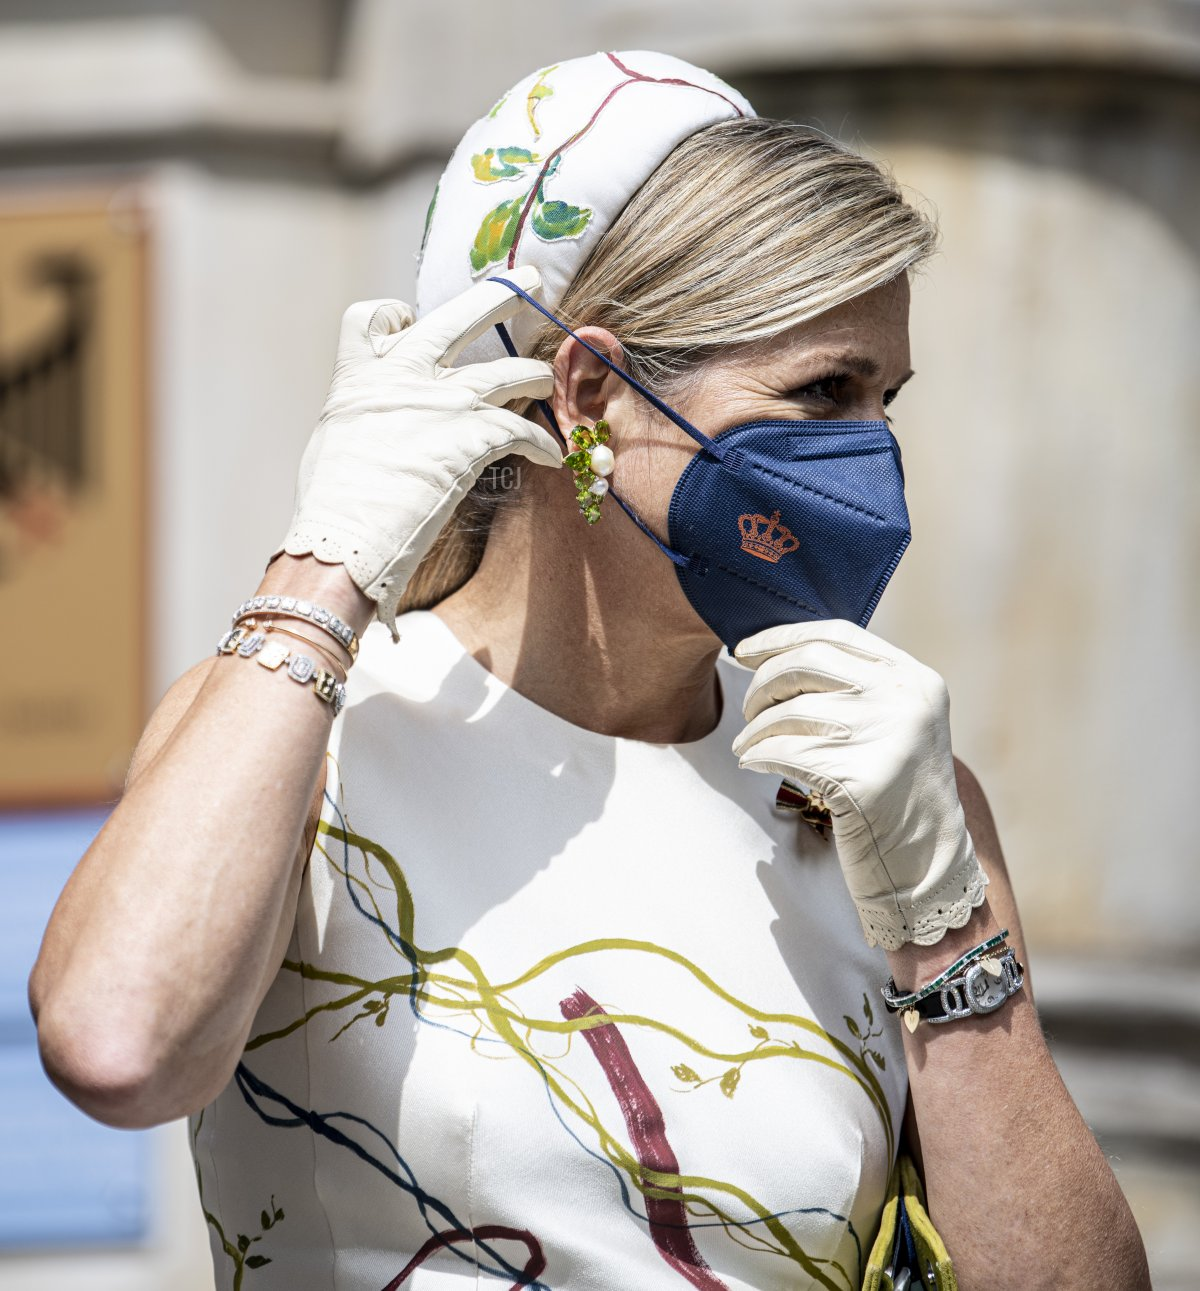 Queen Maxima of the Netherlands arrives for a visit to the Robert Koch Institute on July 05, 2021 in Berlin, Germany